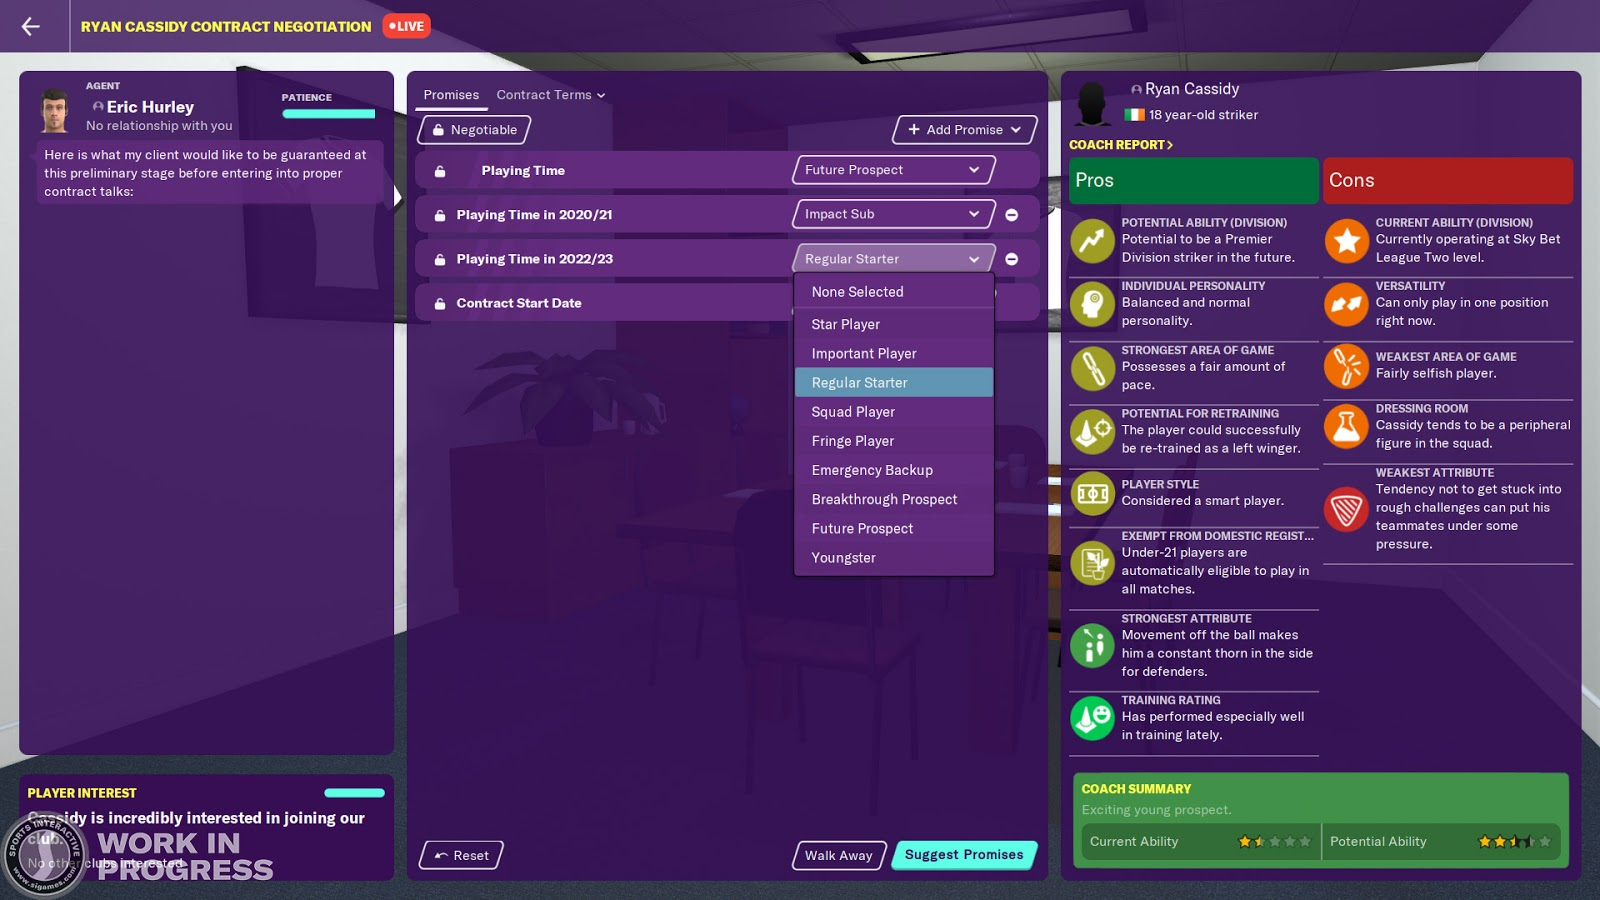 A contract offer screen in Football Manager 2020